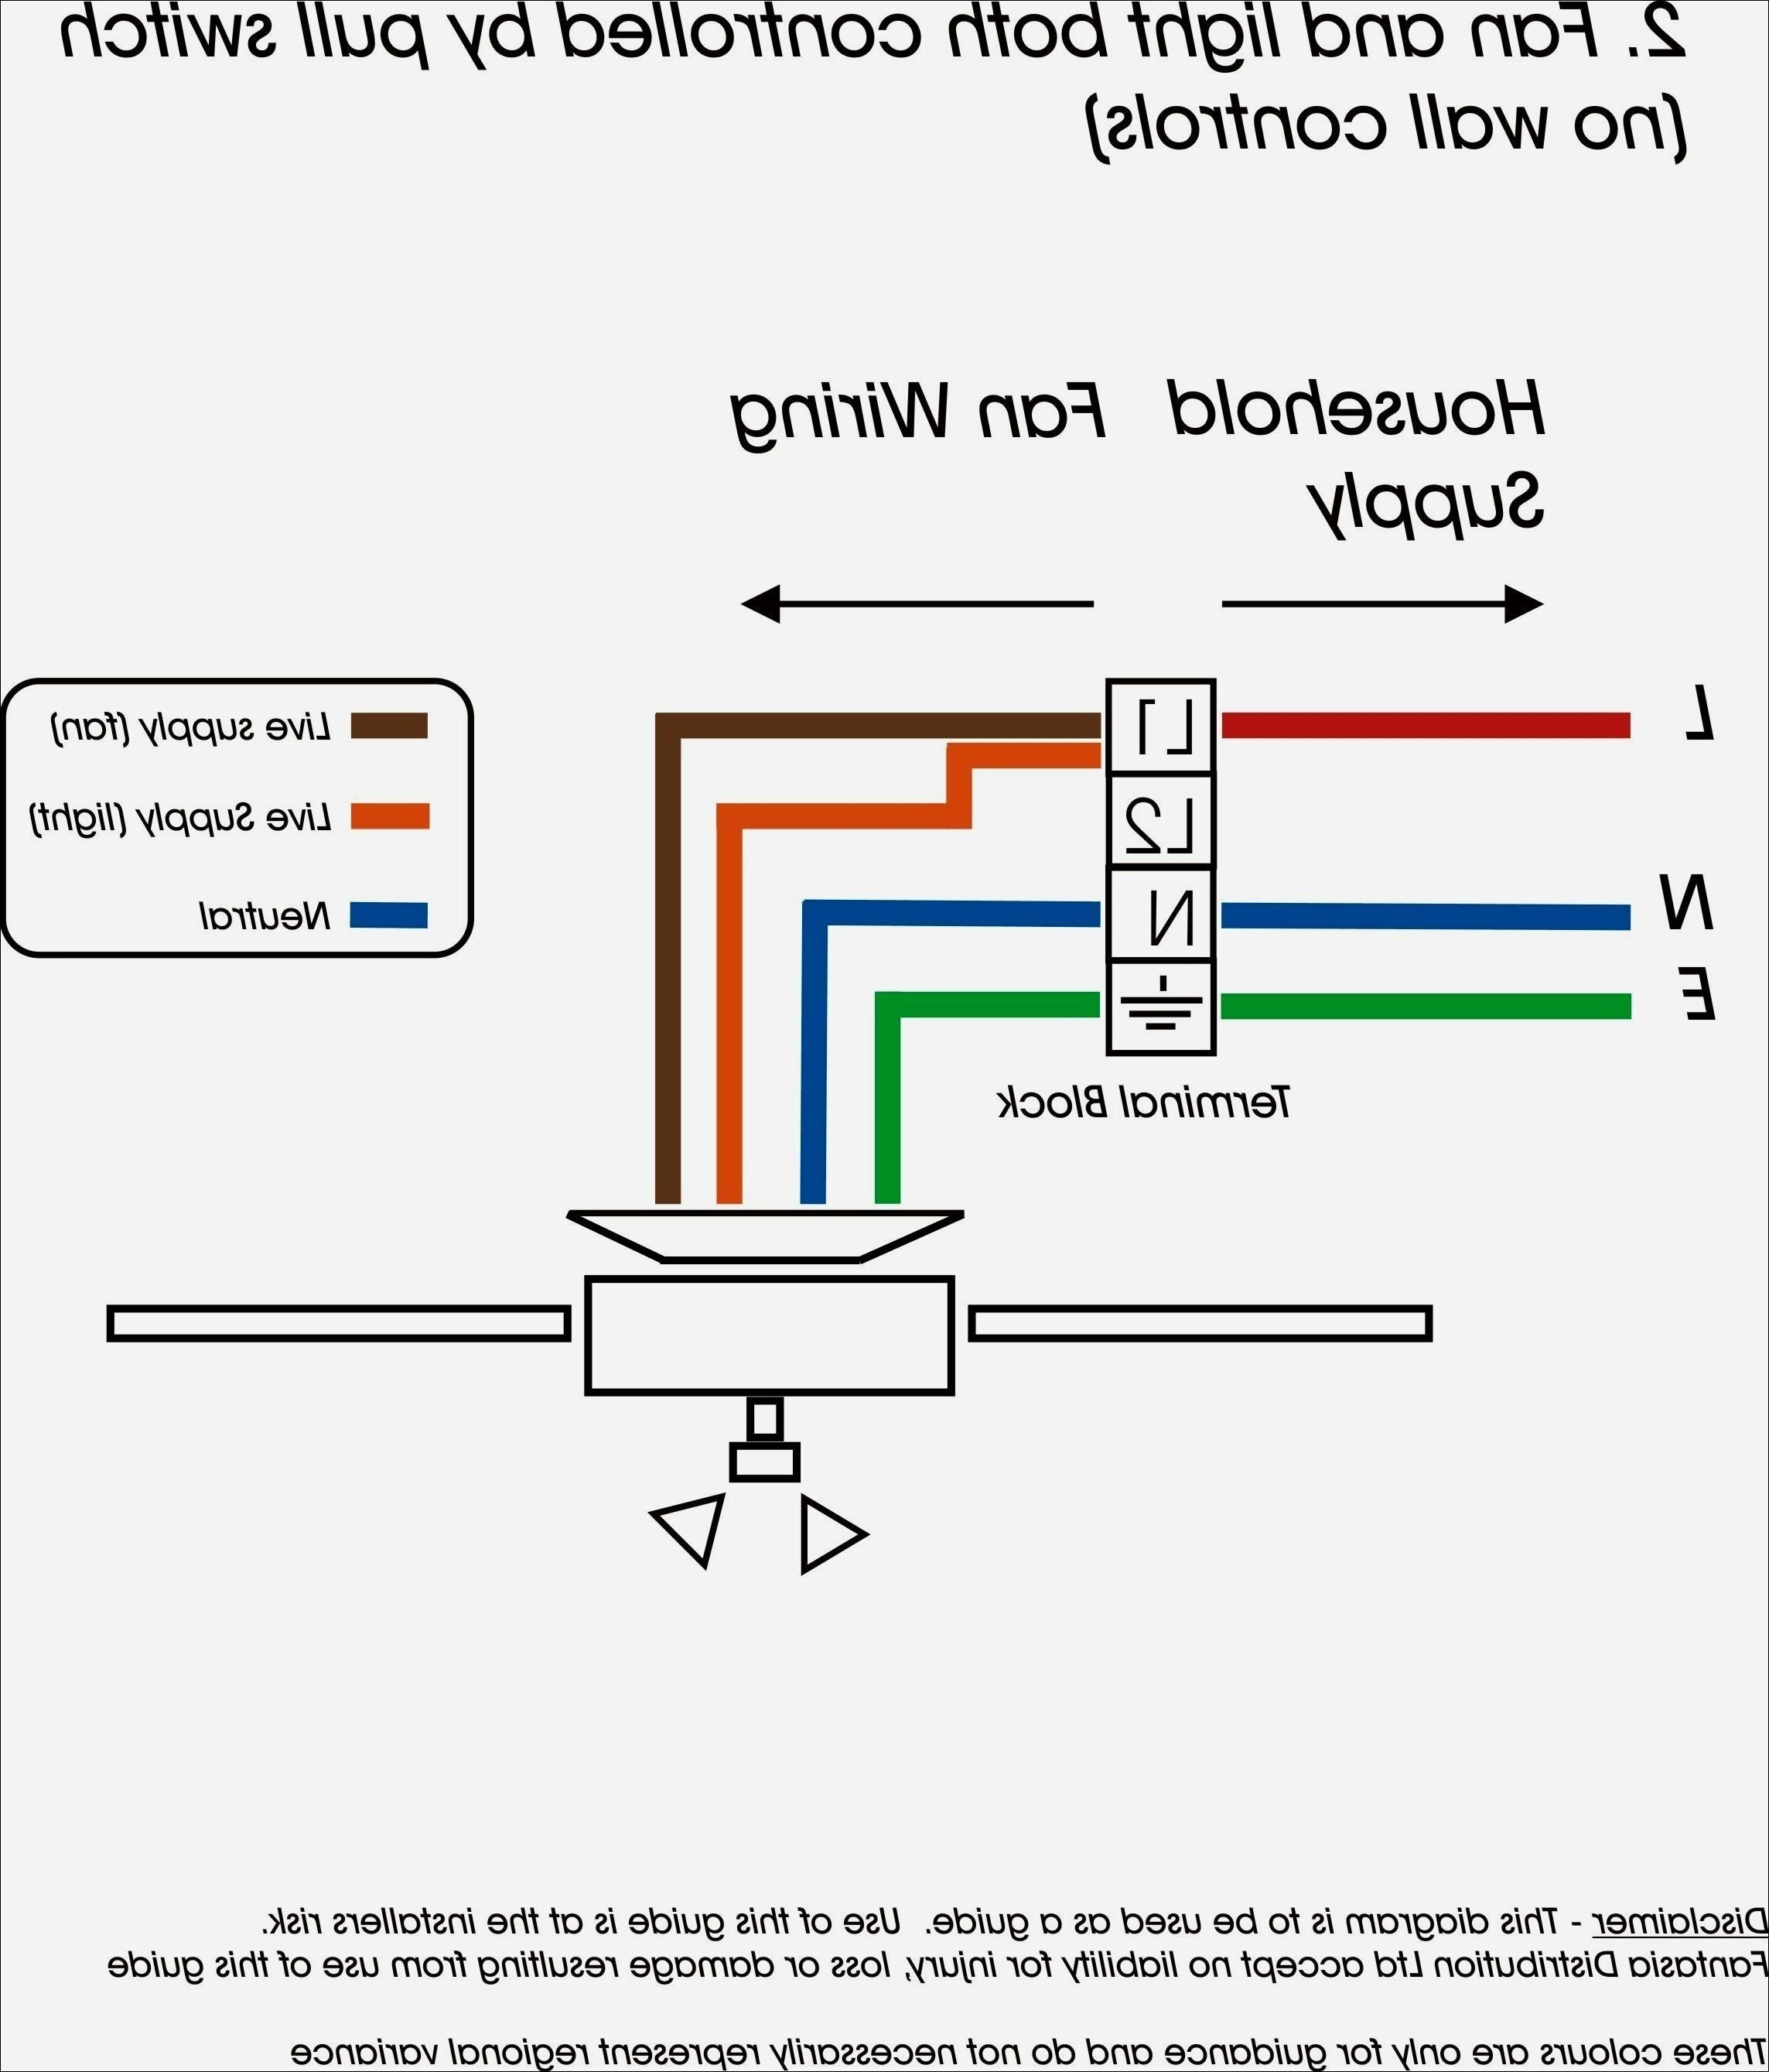 Wiring Diagram for Gm Light Switch 2017 Wiring Diagram for Gm Light Switch Inspirationa Light Switch Gm